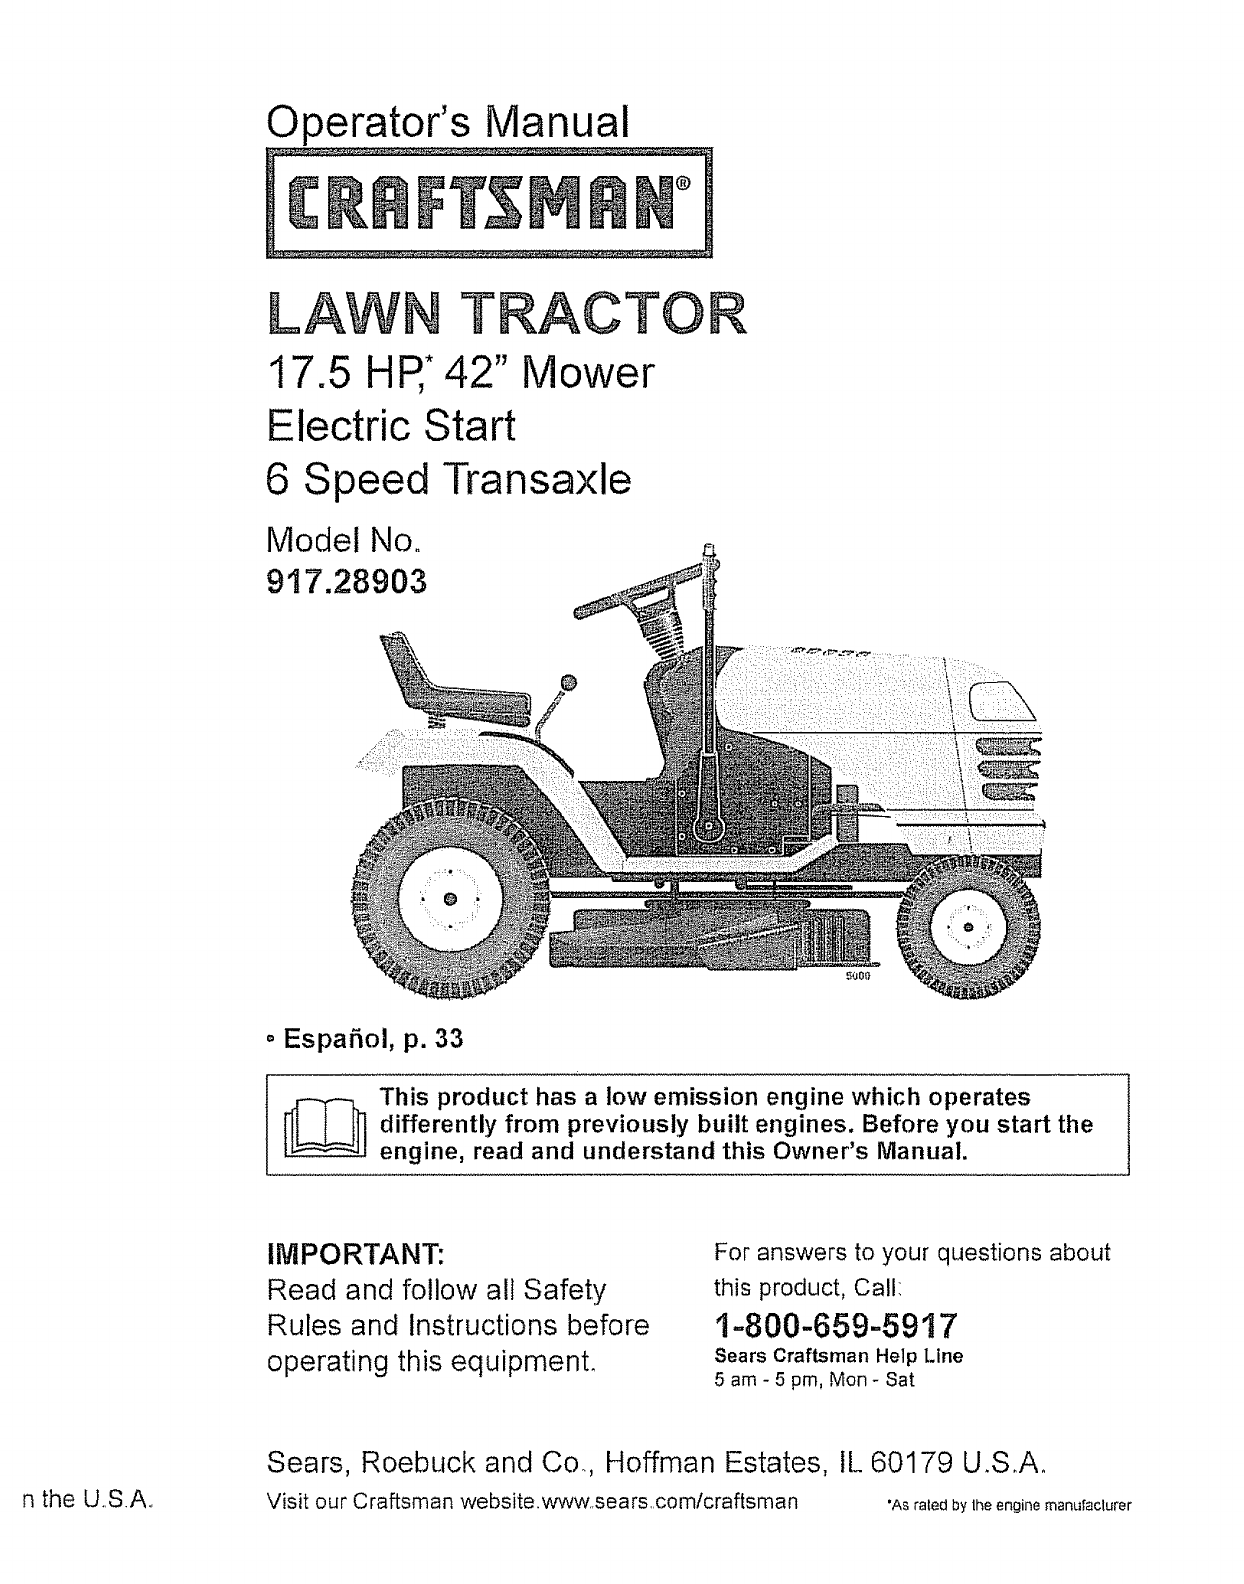 cb1648fd ba11 4ad4 80be 7014e24be2a7 bg1 craftsman riding lawn mower parts model 502254280 sears craftsman lt1000 wiring diagram at soozxer.org